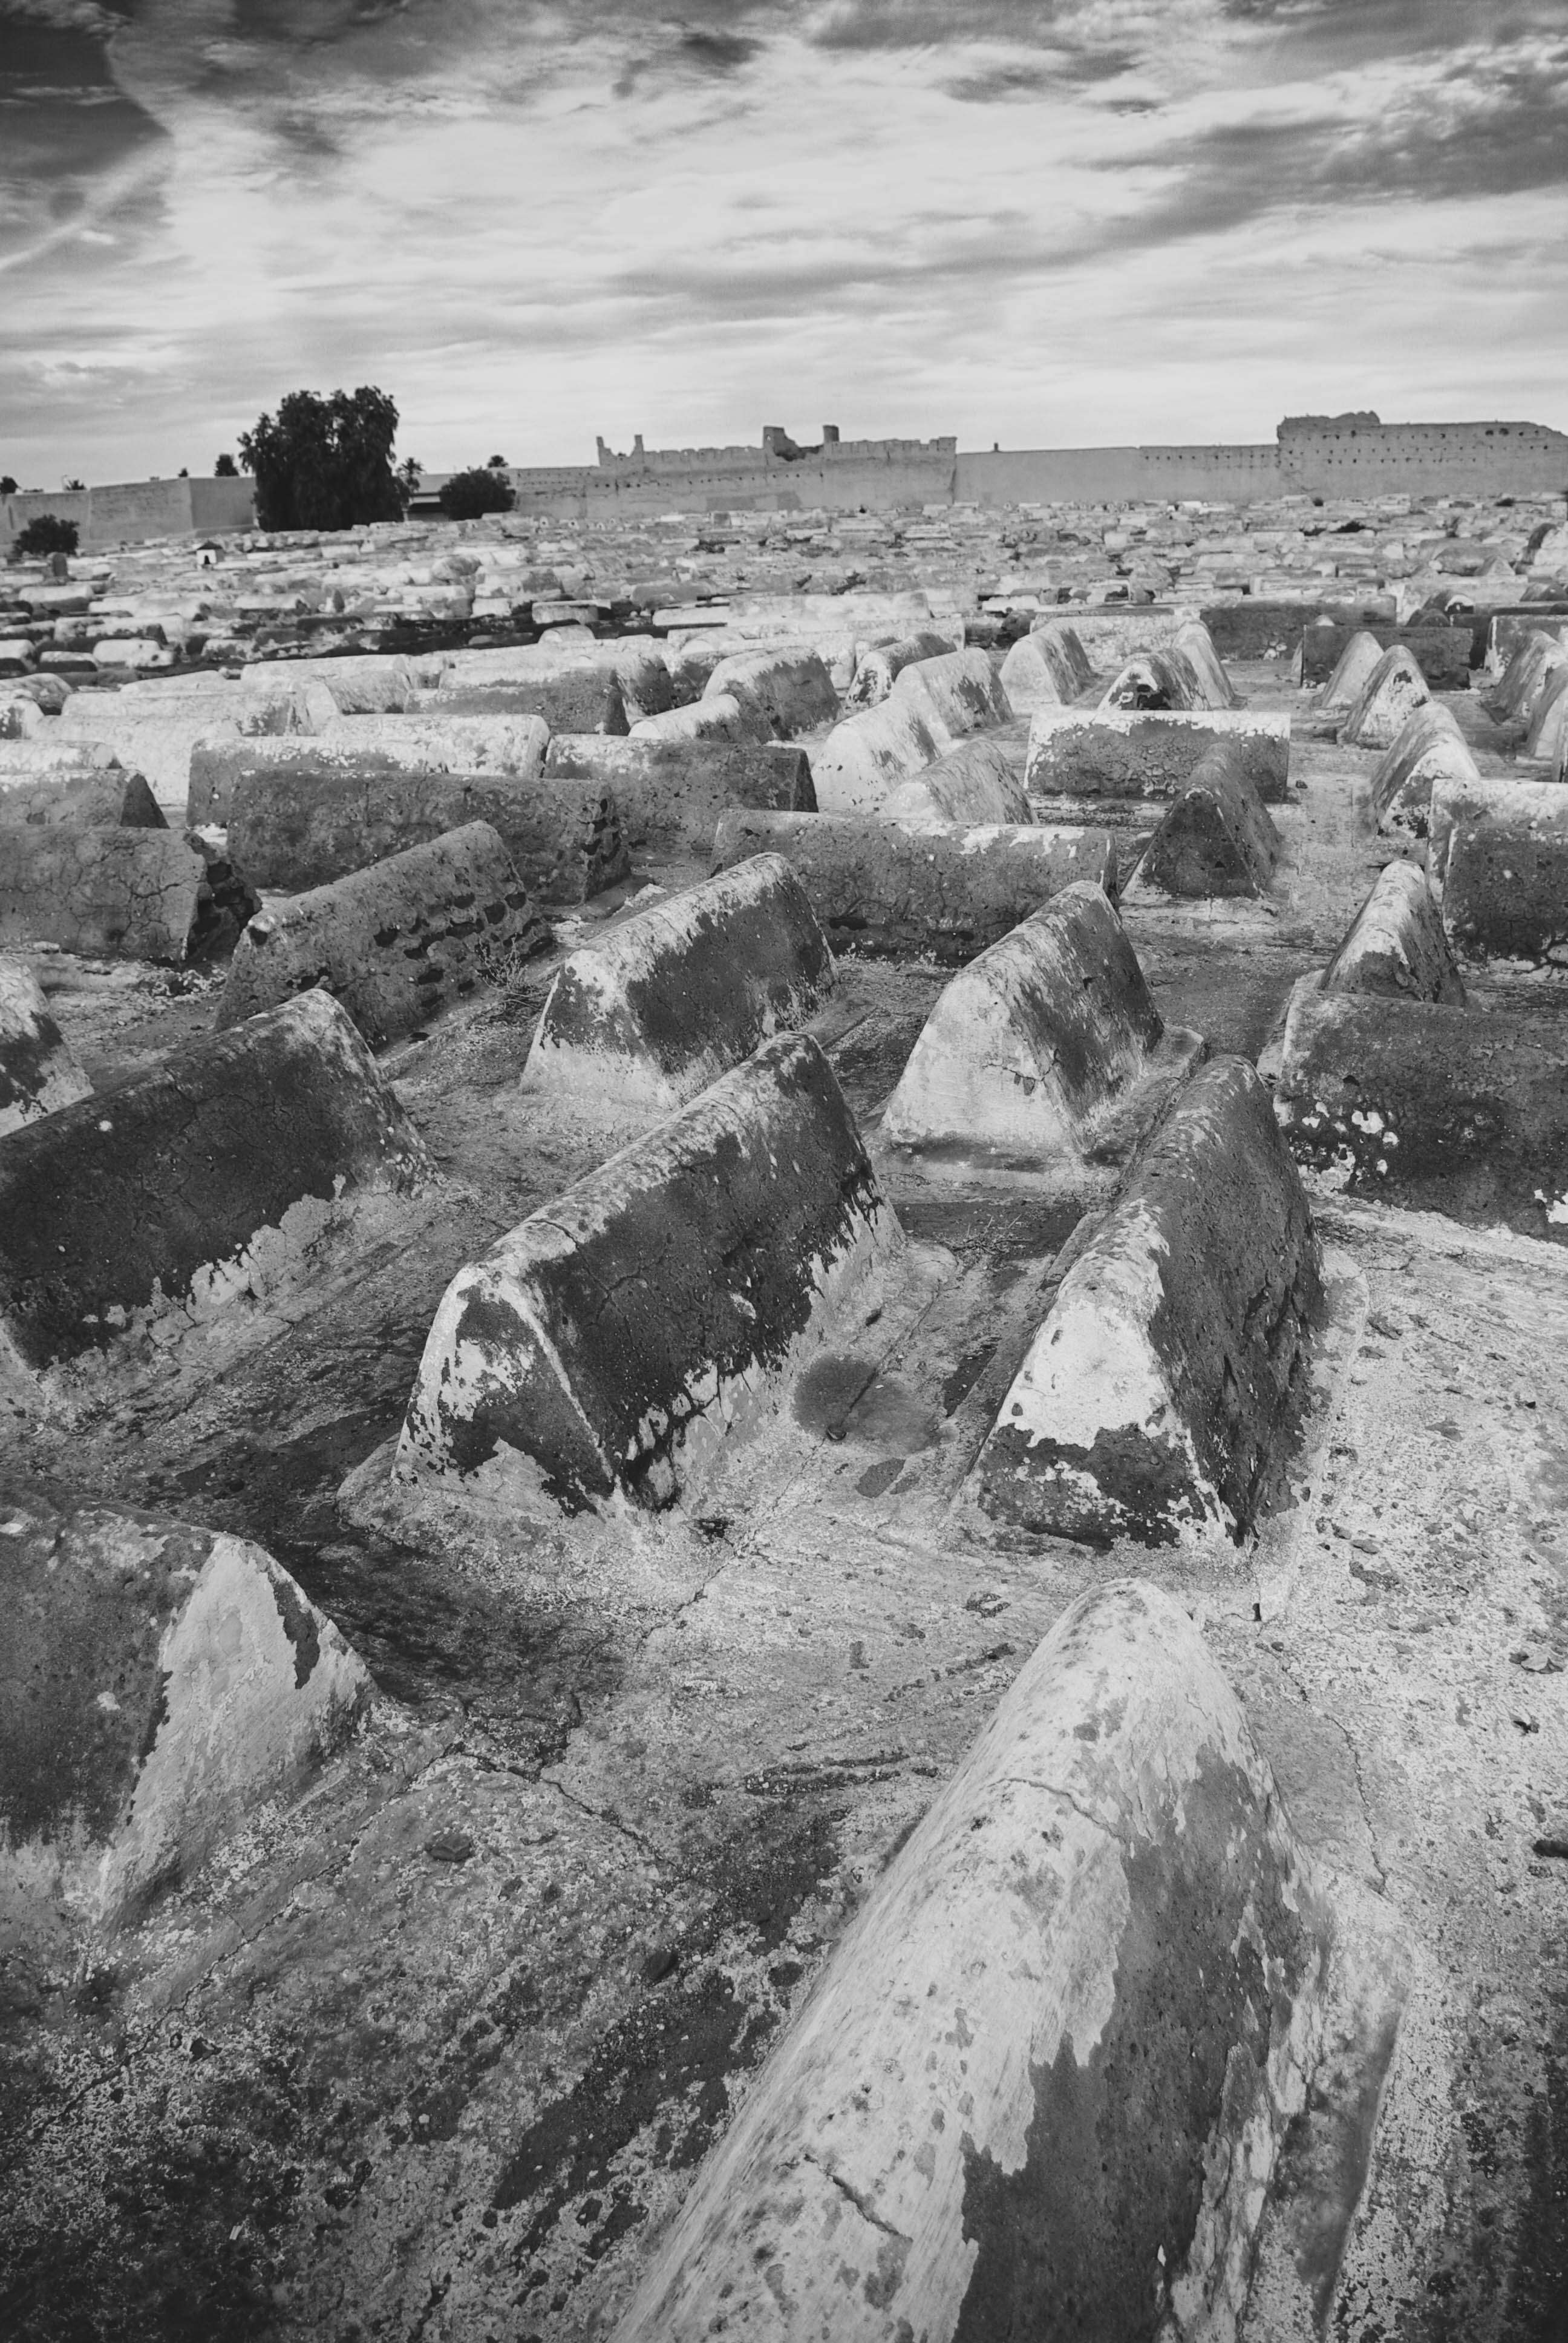 <p>Simple graves sealed with concrete in one section of Marrakech's Jewish cemetery. This large cemetery speaks to the considerable size of the Jewish community in Marrakech at one point.</p>